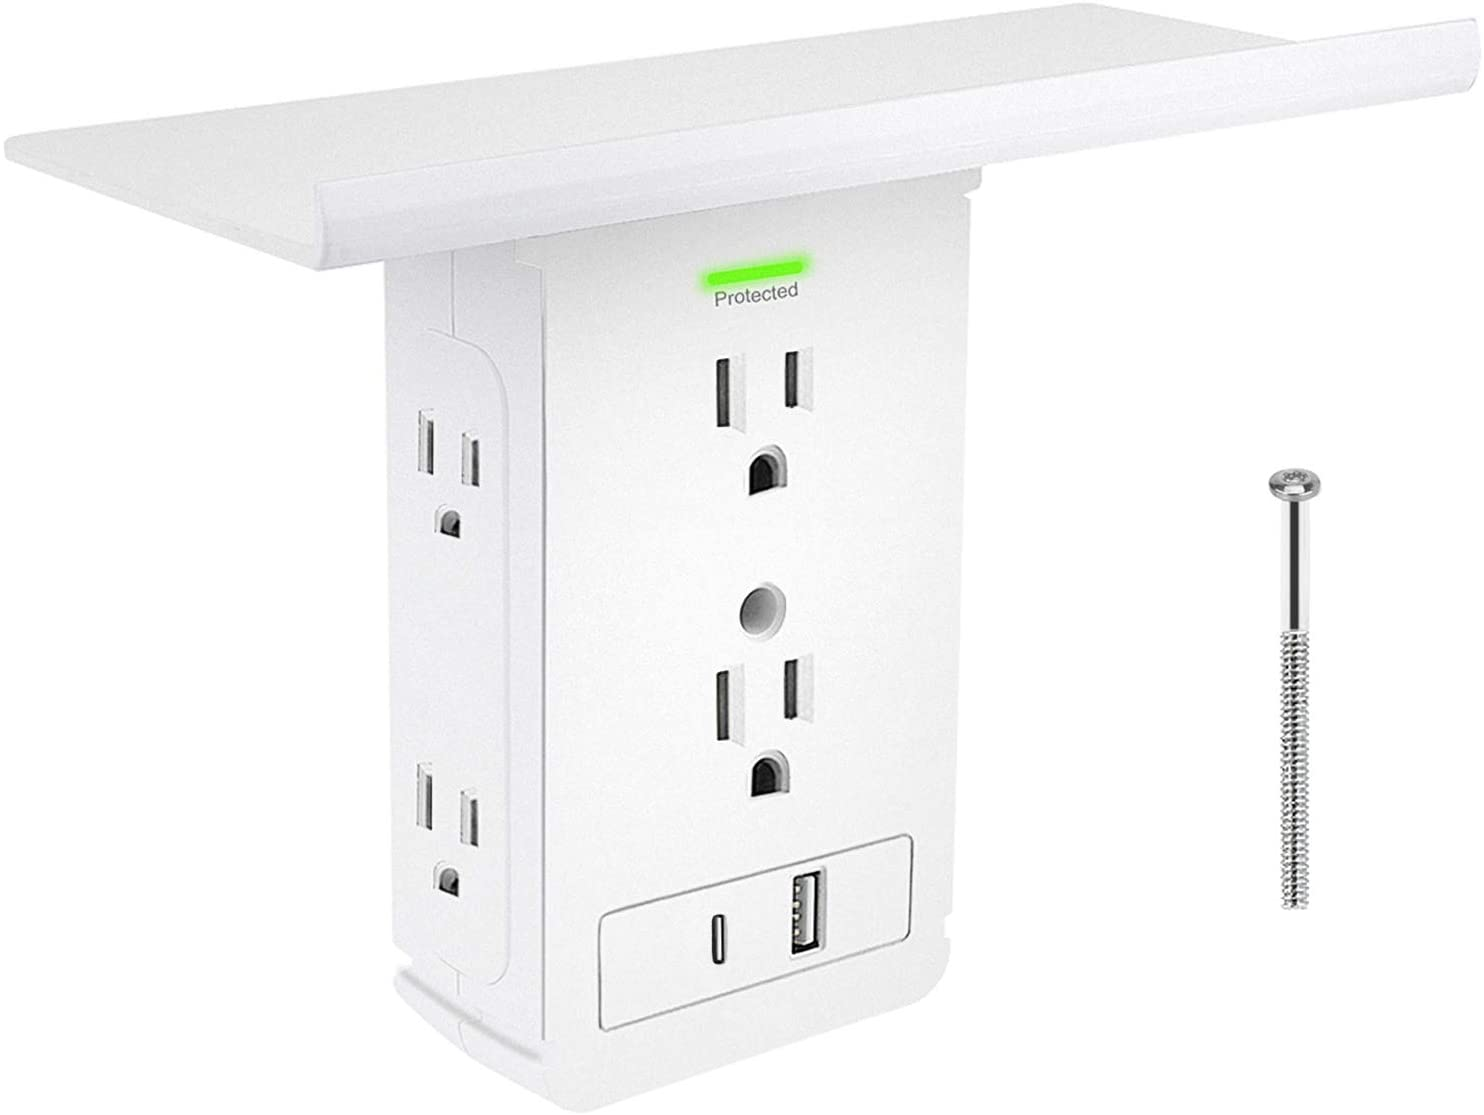 Socket Shelf Outlet,Surge Protector Wall Outlet,Extra-Large Shelf with 6 Electrical Outlet Extenders,1 USB Charging Ports,1 Type-C Charging Port,Removable Built-In Shelf (6AC)